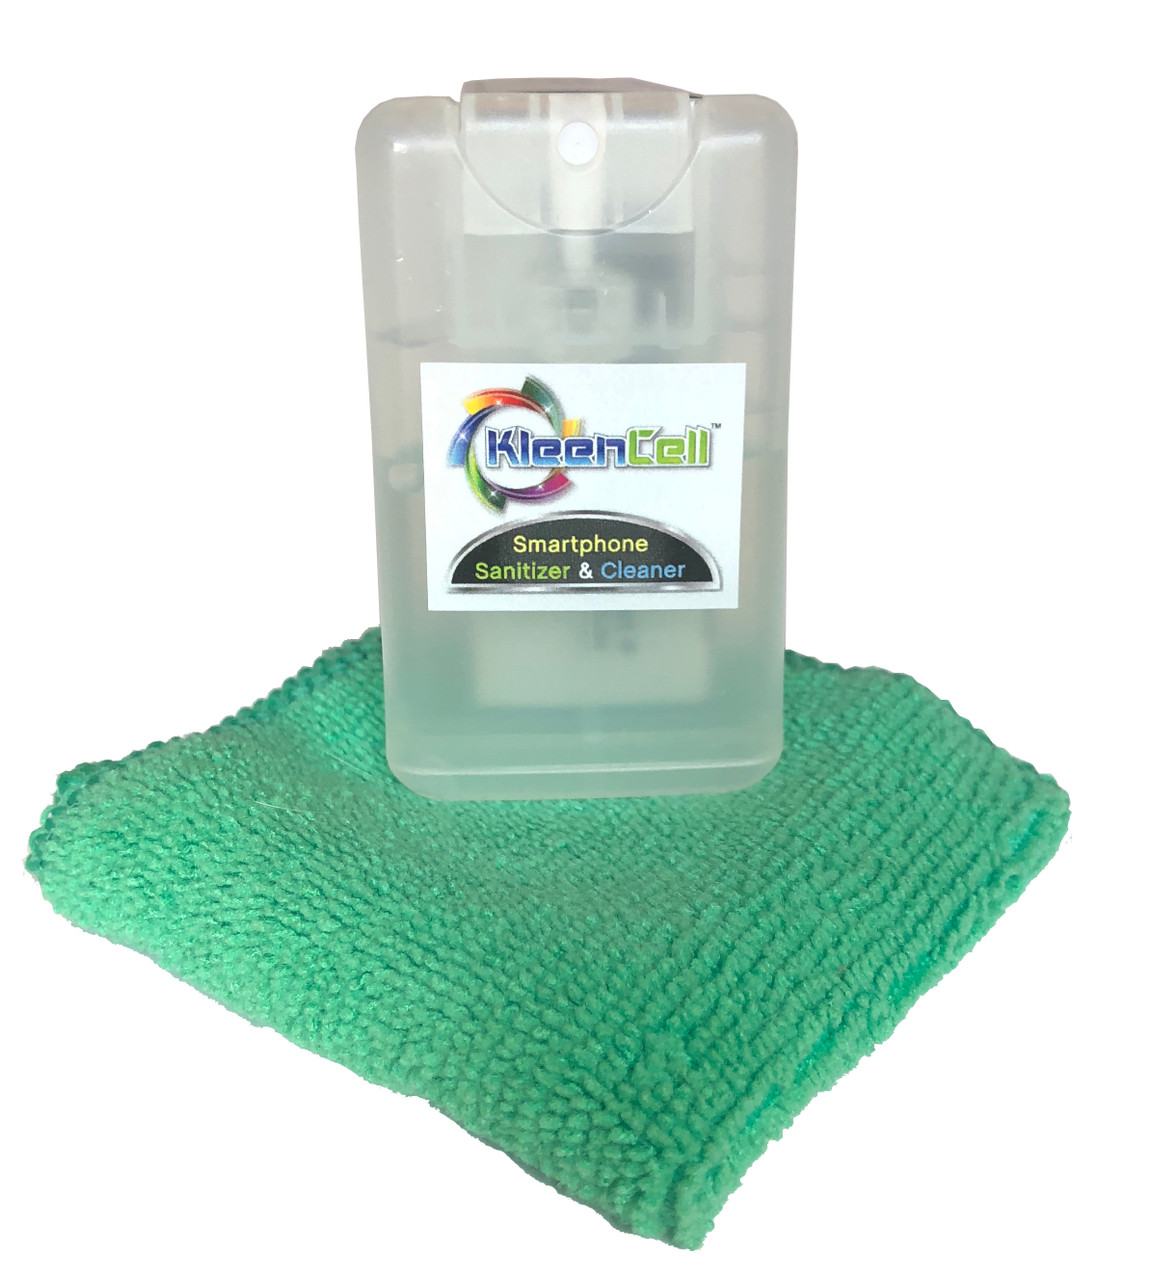 KleenCell - Screen & Cell Phone Cleaner Kit – All Organic Formula Safe for Smartphones, Eyeglasses and Gadgets